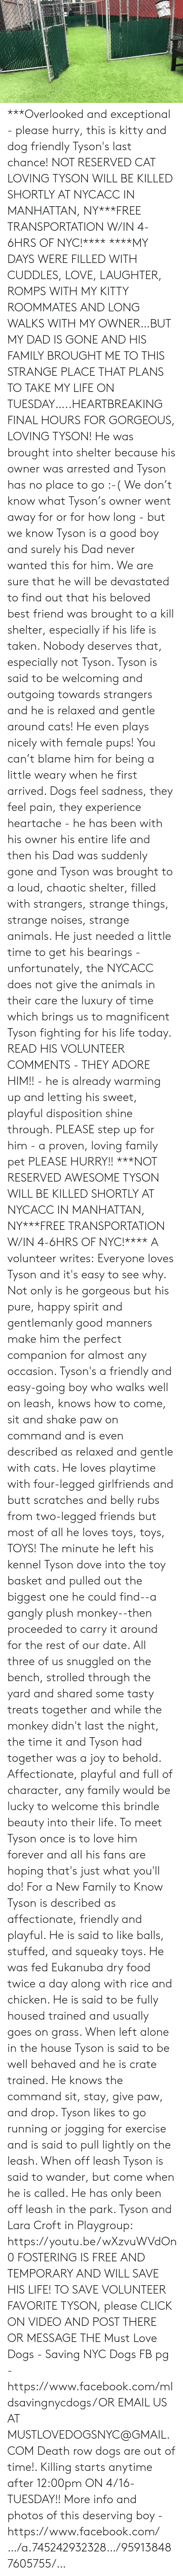 Being Alone, Animals, and Best Friend: ***Overlooked and exceptional - please hurry, this is kitty and dog friendly Tyson's last chance! NOT RESERVED CAT LOVING TYSON WILL BE KILLED SHORTLY AT NYCACC IN MANHATTAN, NY***FREE TRANSPORTATION W/IN 4-6HRS OF NYC!****  ****MY DAYS WERE FILLED WITH CUDDLES, LOVE, LAUGHTER, ROMPS WITH MY KITTY ROOMMATES AND LONG WALKS WITH MY OWNER…BUT MY DAD IS GONE AND HIS FAMILY BROUGHT ME TO THIS STRANGE PLACE THAT PLANS TO TAKE MY LIFE ON TUESDAY…..HEARTBREAKING FINAL HOURS FOR GORGEOUS, LOVING TYSON! He was brought into shelter because his owner was arrested and Tyson has no place to go :-( We don't know what Tyson's owner went away for or for how long - but we know Tyson is a good boy and surely his Dad never wanted this for him. We are sure that he will be devastated to find out that his beloved best friend was brought to a kill shelter, especially if his life is taken. Nobody deserves that, especially not Tyson. Tyson is said to be welcoming and outgoing towards strangers and he is relaxed and gentle around cats! He even plays nicely with female pups! You can't blame him for being a little weary when he first arrived. Dogs feel sadness, they feel pain, they experience heartache - he has been with his owner his entire life and then his Dad was suddenly gone and Tyson was brought to a loud, chaotic shelter, filled with strangers, strange things, strange noises, strange animals. He just needed a little time to get his bearings - unfortunately, the NYCACC does not give the animals in their care the luxury of time which brings us to magnificent Tyson fighting for his life today. READ HIS VOLUNTEER COMMENTS - THEY ADORE HIM!! - he is already warming up and letting his sweet, playful disposition shine through. PLEASE step up for him - a proven, loving family pet PLEASE HURRY!! ***NOT RESERVED AWESOME TYSON WILL BE KILLED SHORTLY AT NYCACC IN MANHATTAN, NY***FREE TRANSPORTATION W/IN 4-6HRS OF NYC!****  A volunteer writes: Everyone loves Ty